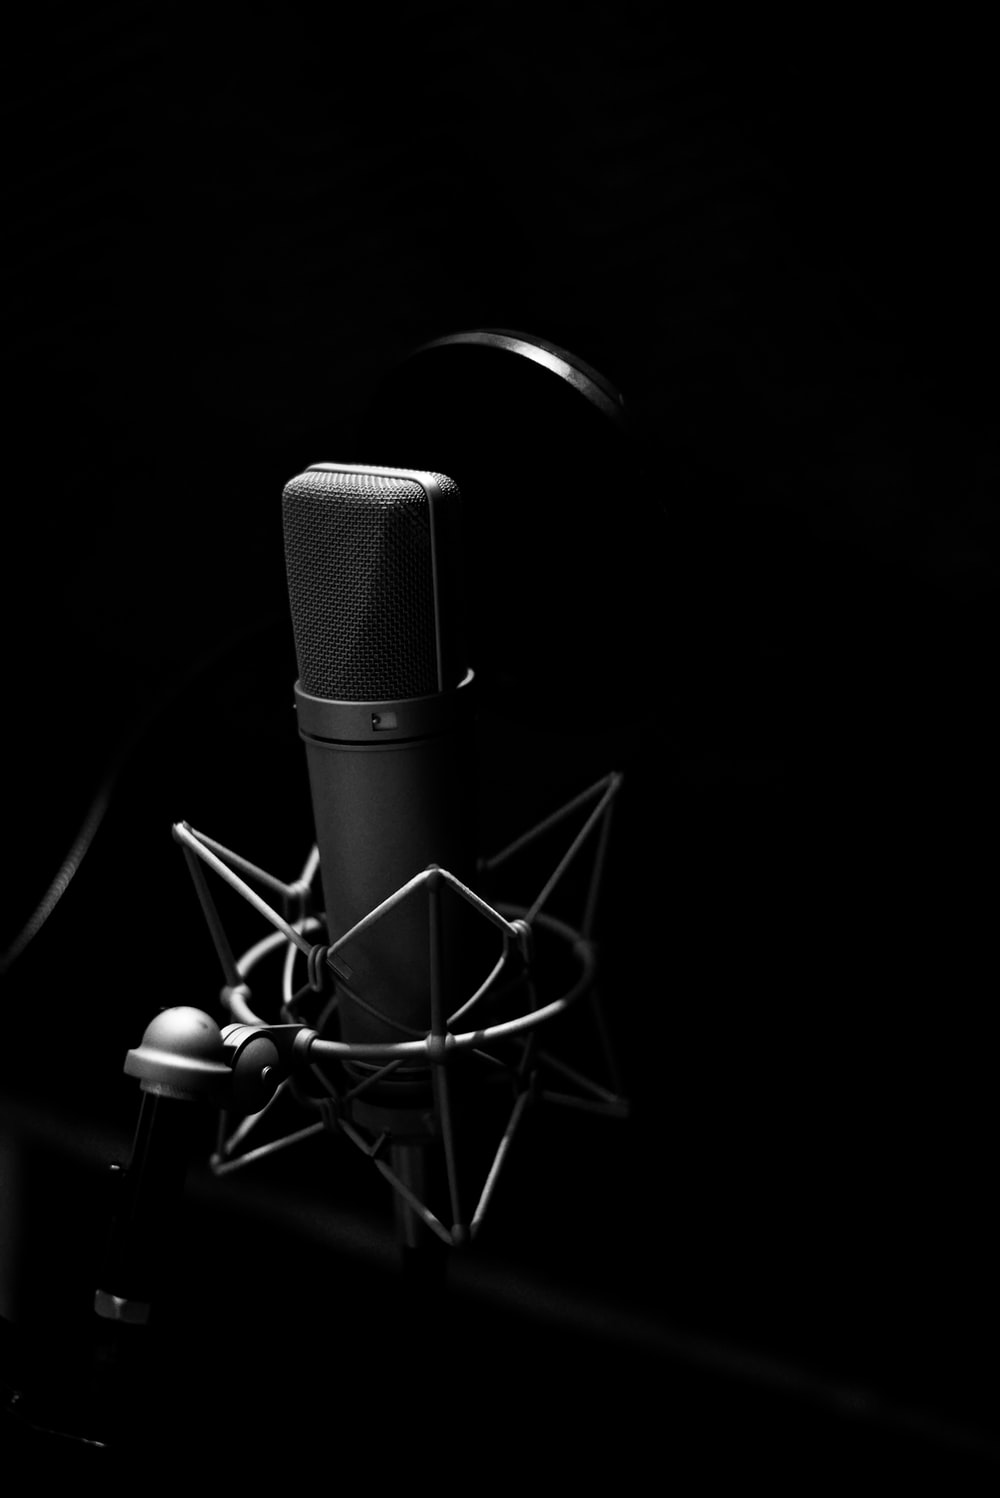 gray condenser microphone and pop filter